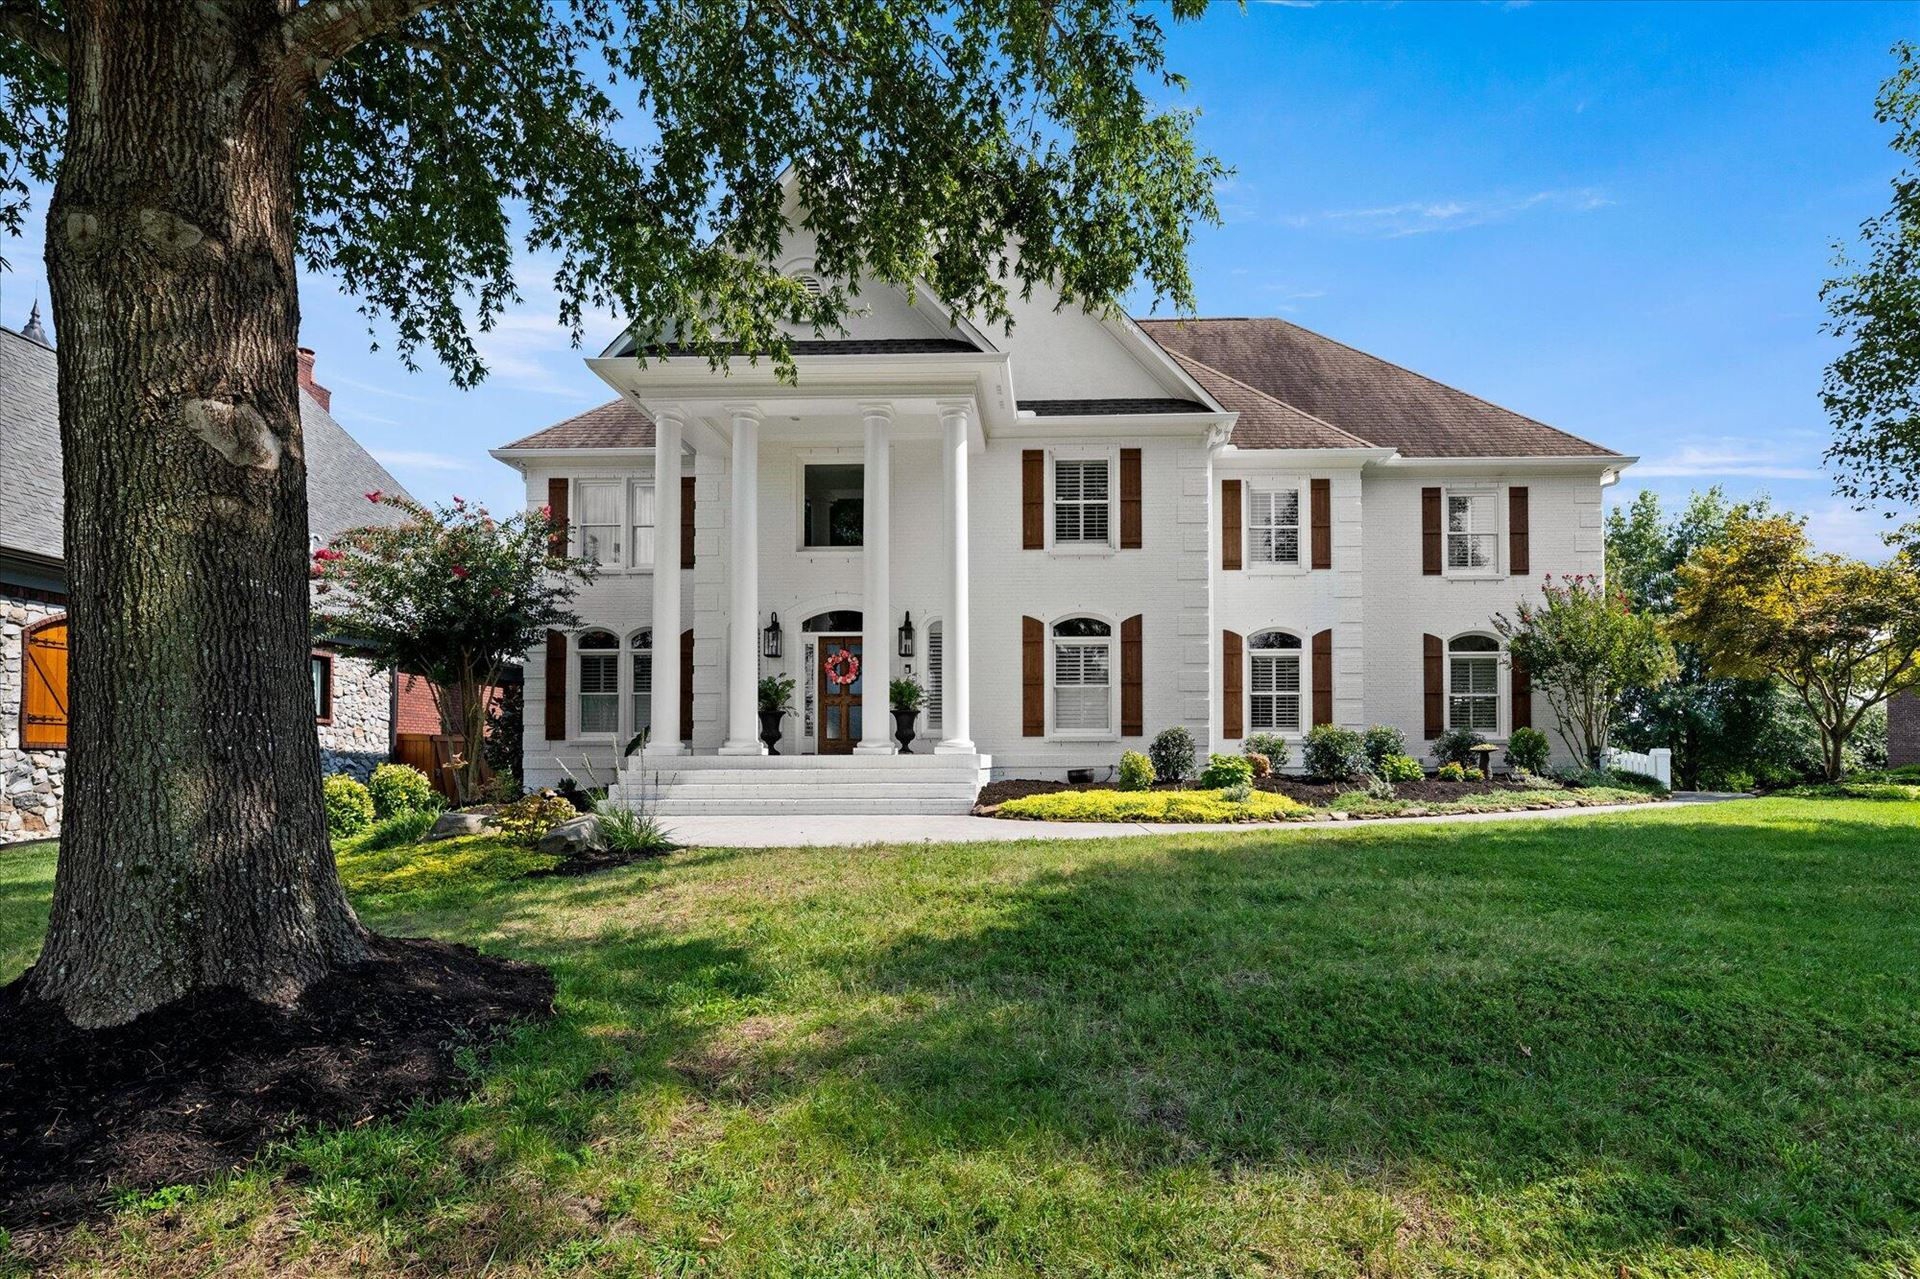 Photo of 9146 Grey Pointe Drive, Knoxville, TN 37922 (MLS # 1167785)